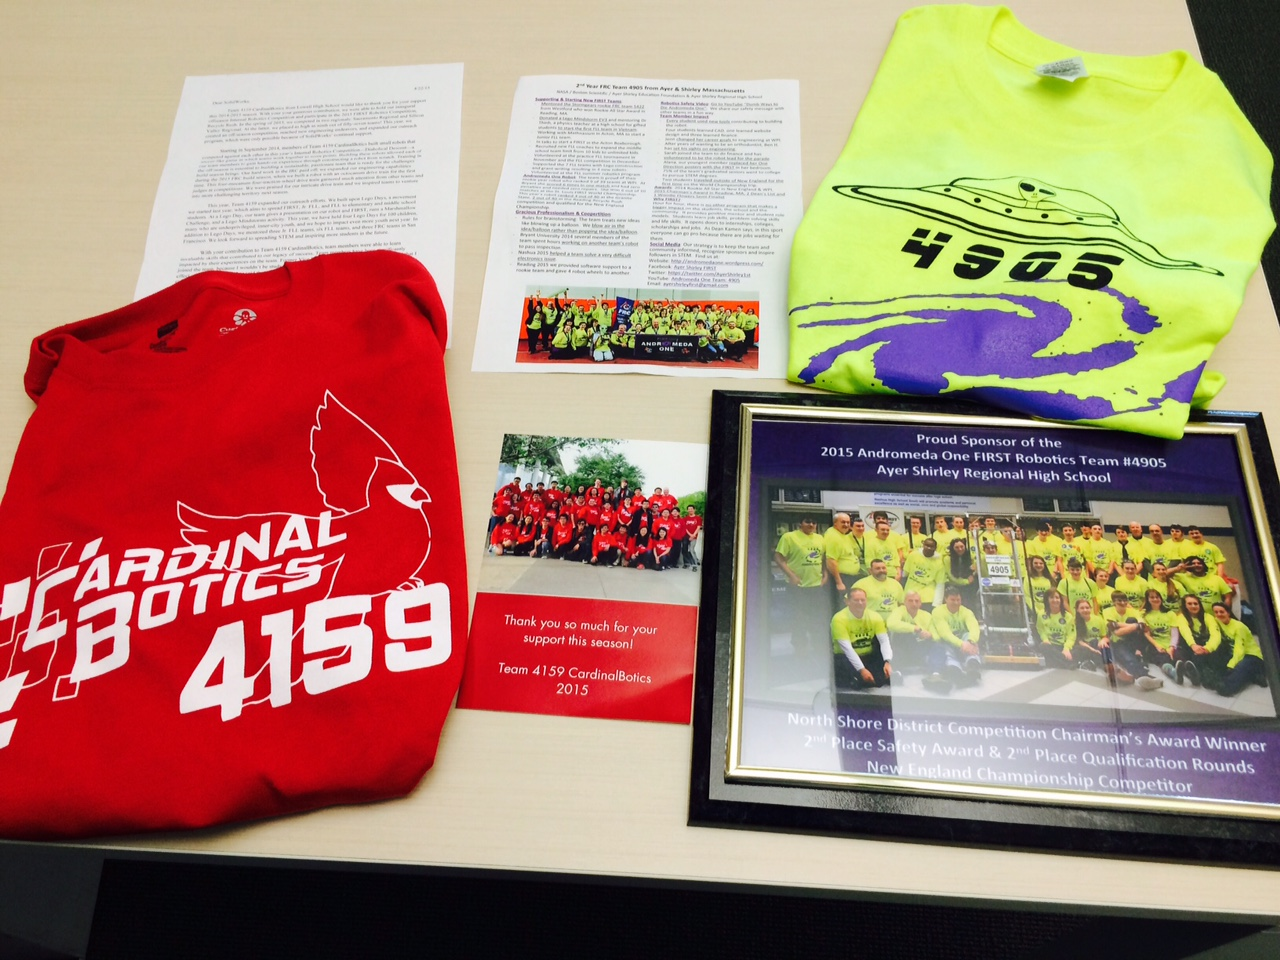 Solidworks Sponsorship For First Robotics Teams Ftc Wiring Diagram Tshirts And Letters From Frc